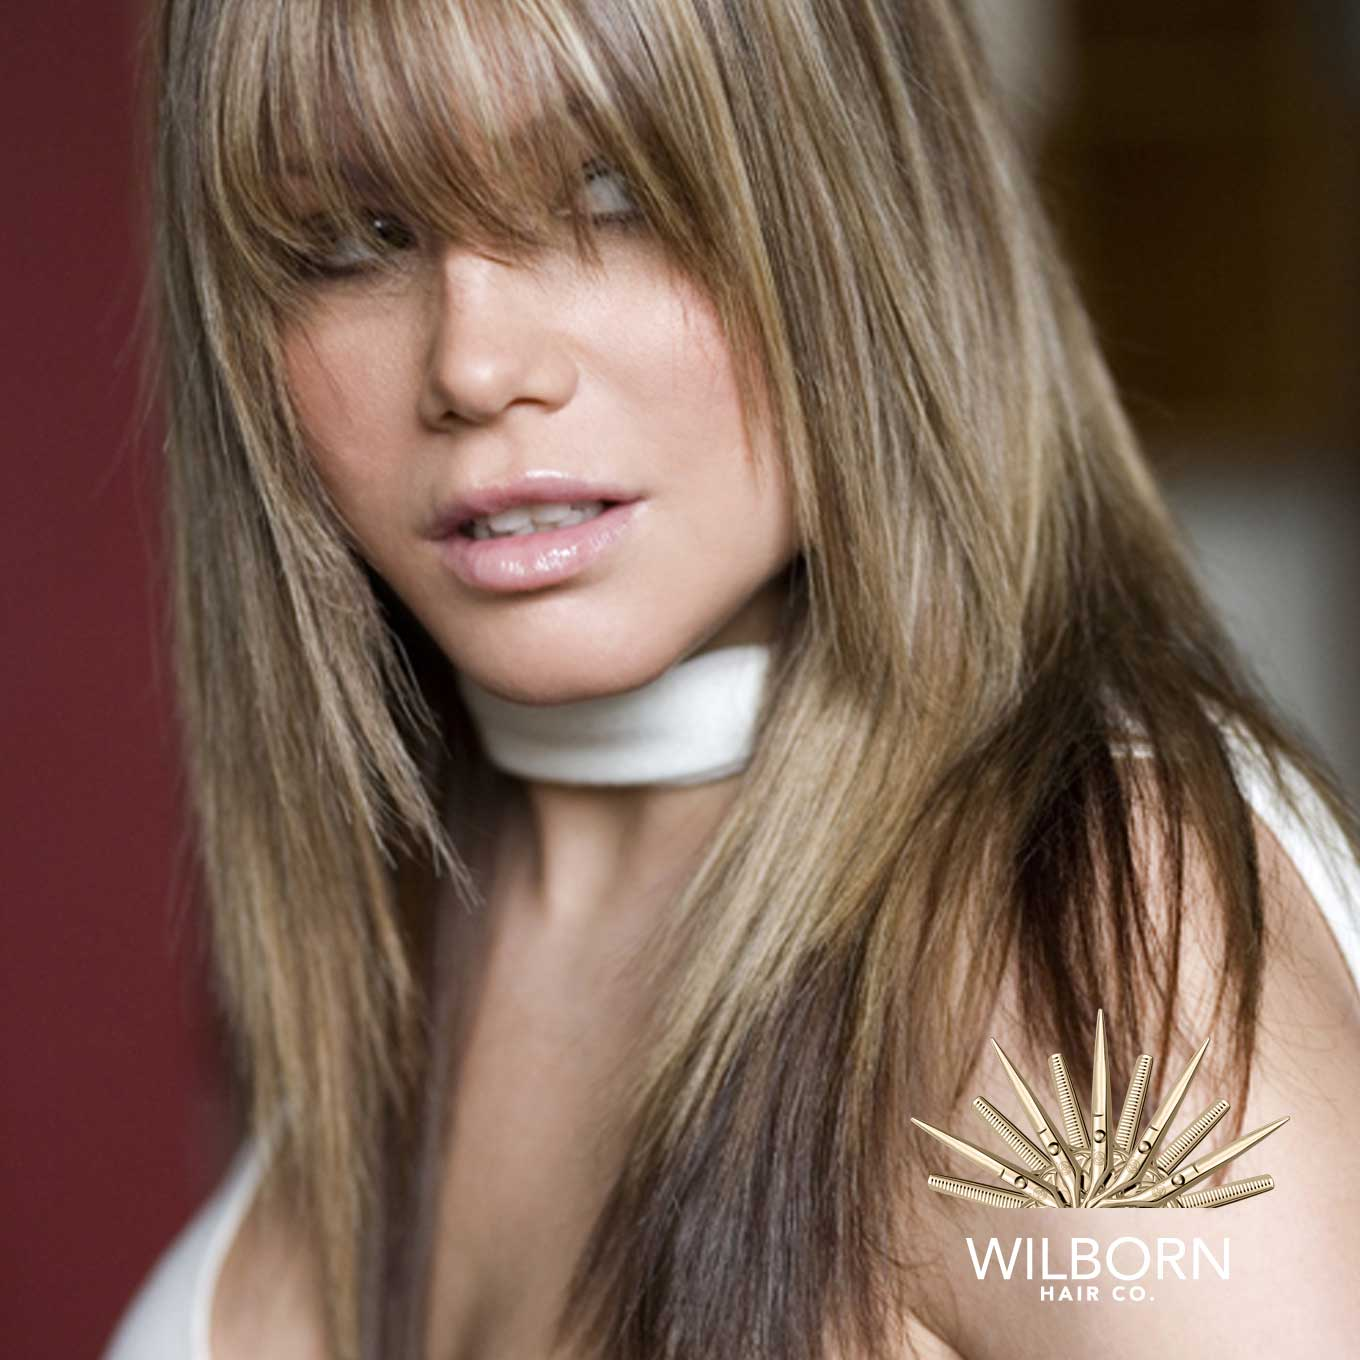 Image Copyright Wilborn Hair Co.